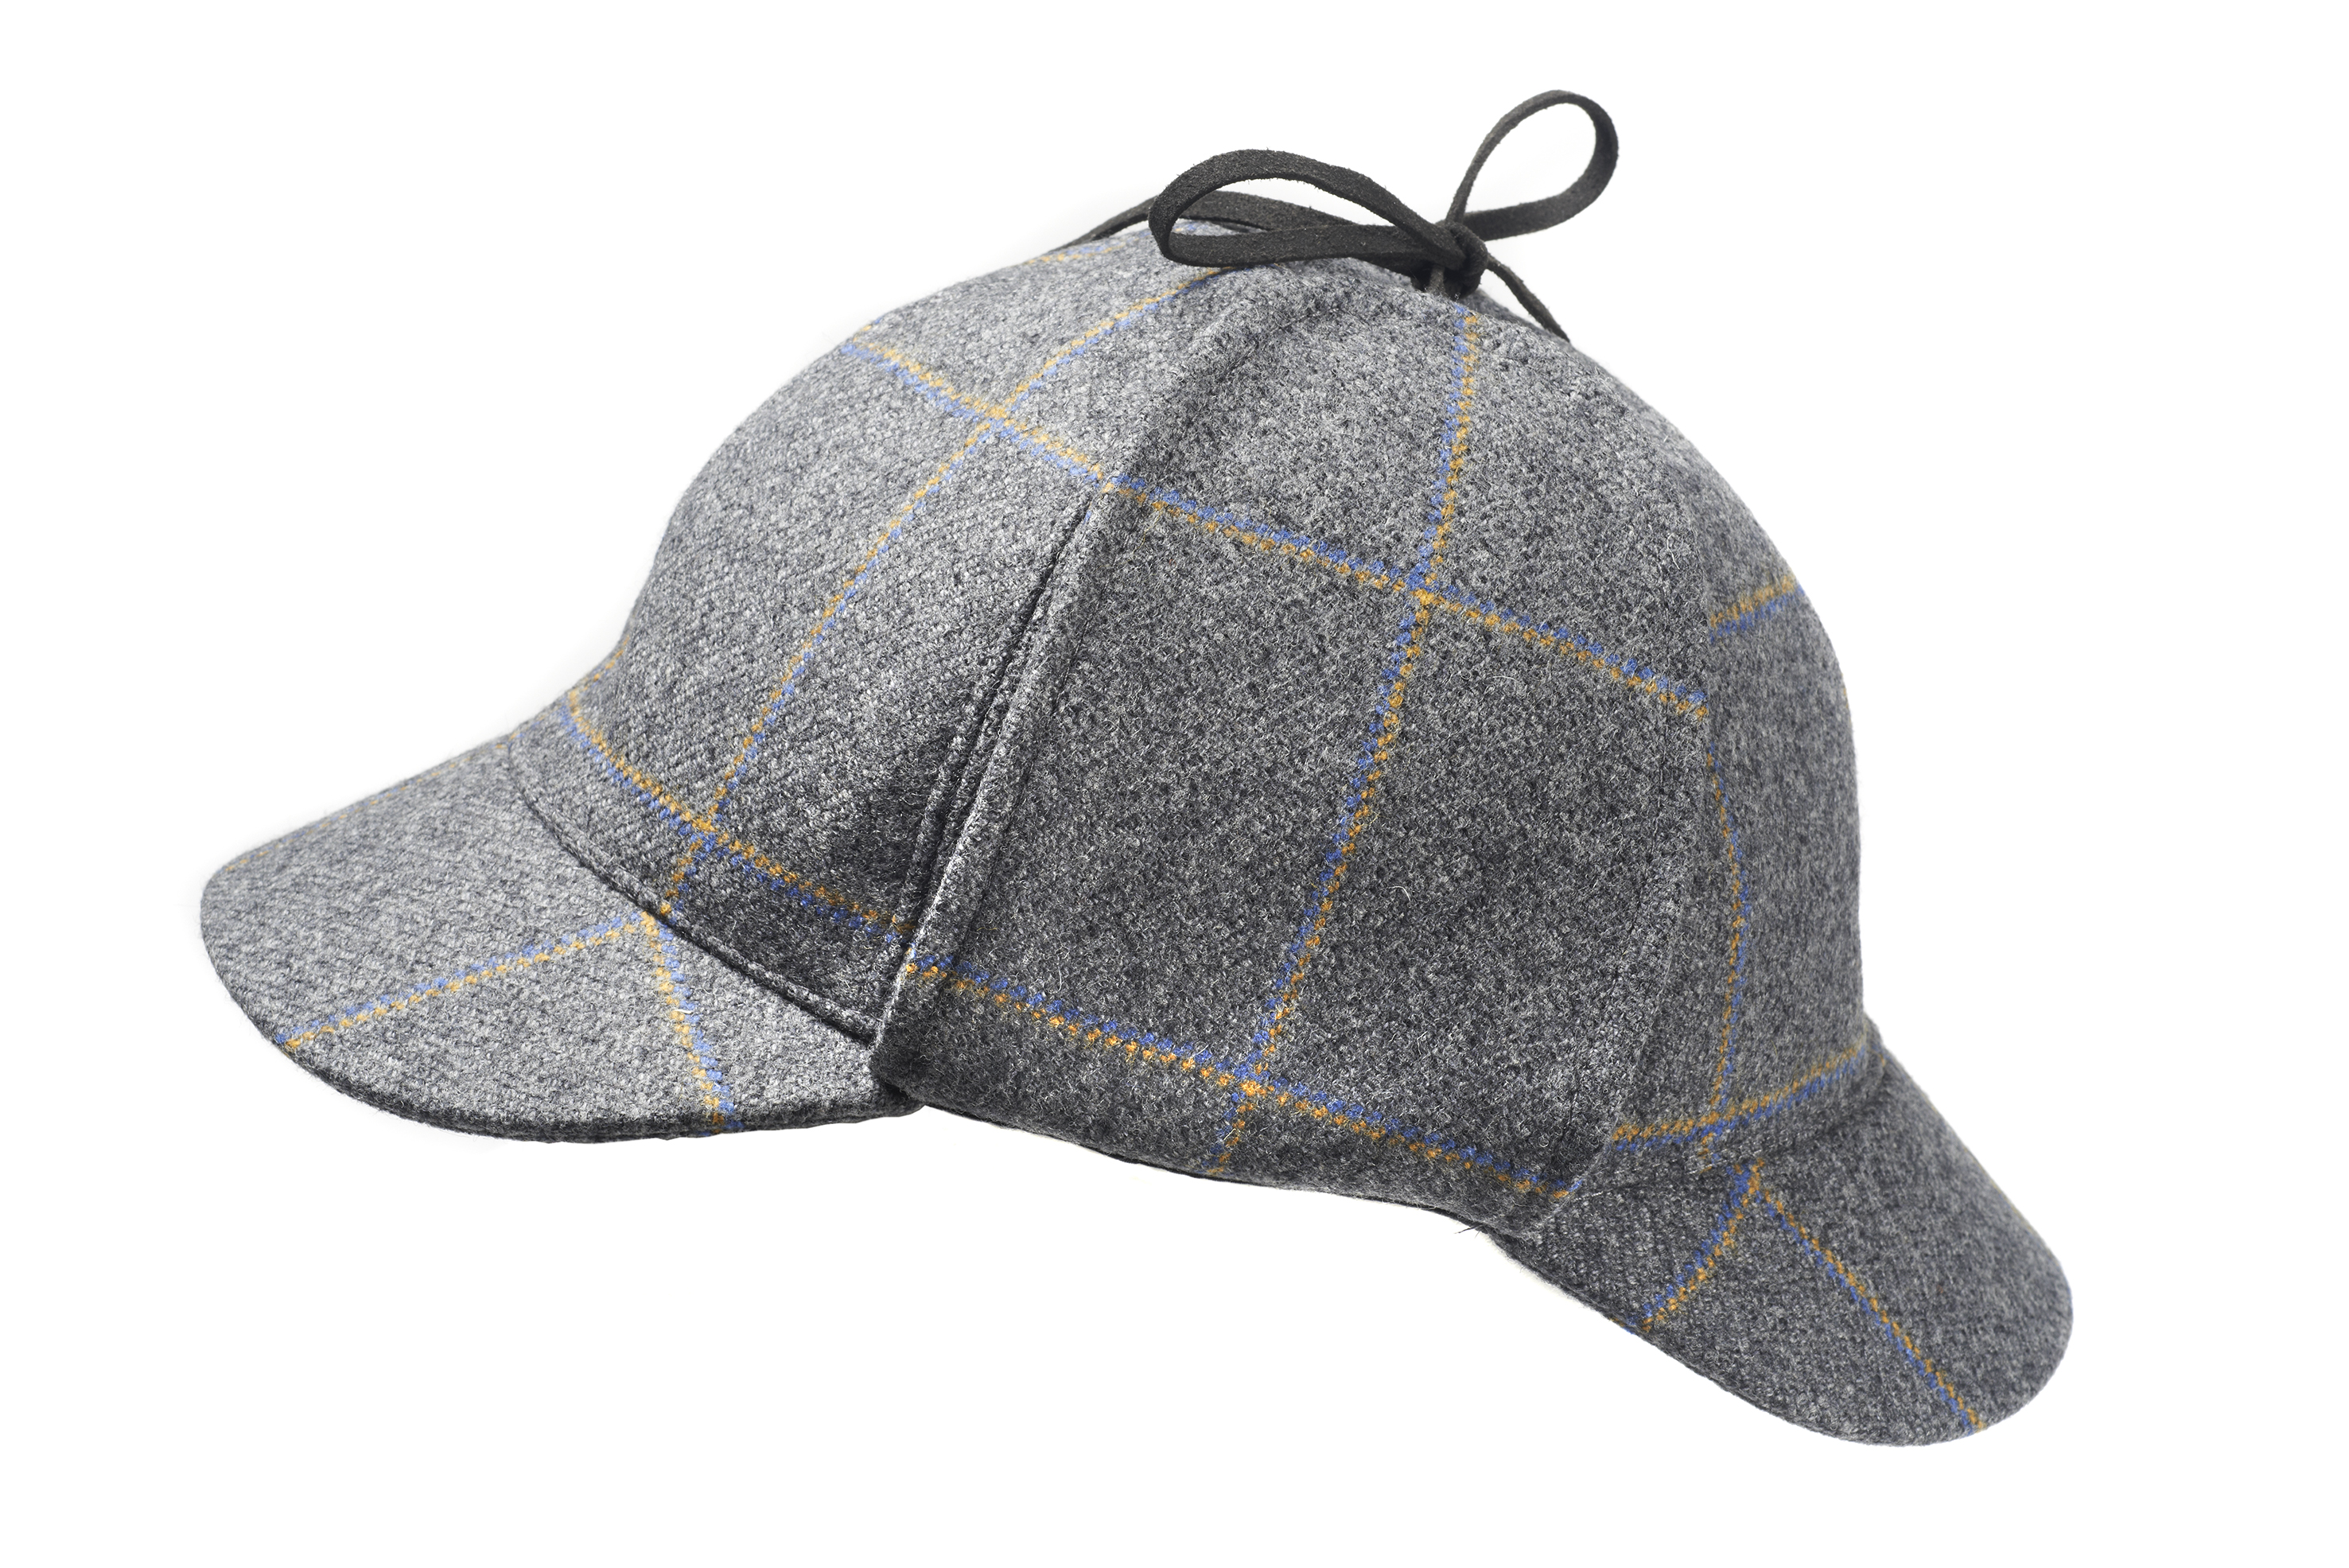 316d34579b6 Tweed hats made for Museum of London from Tweed woven at Lovett Mill